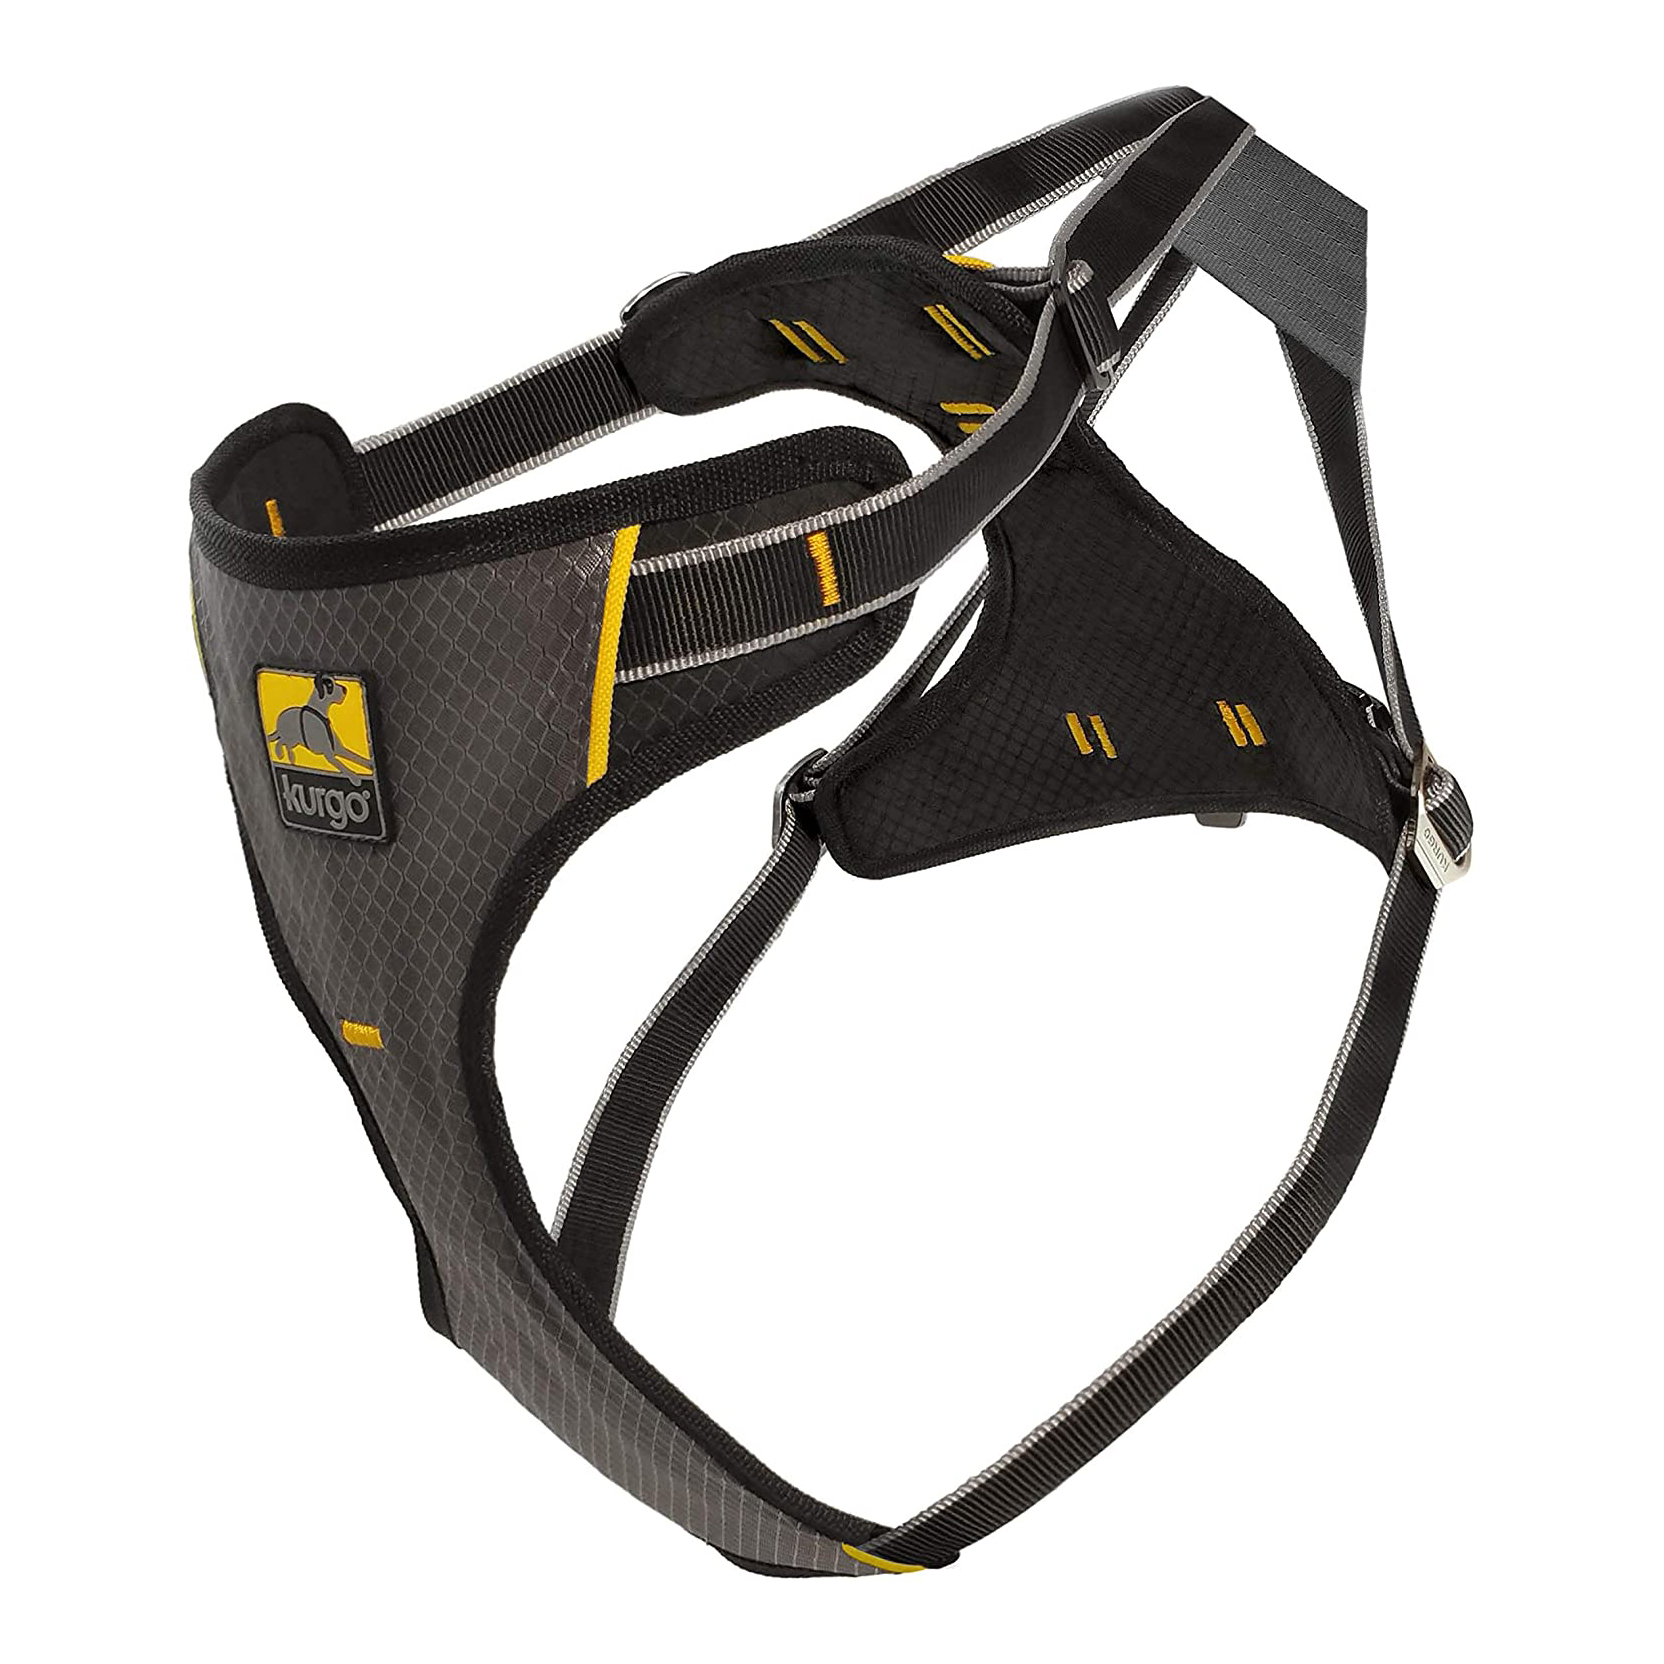 kurgo-car-safety-dog-harness